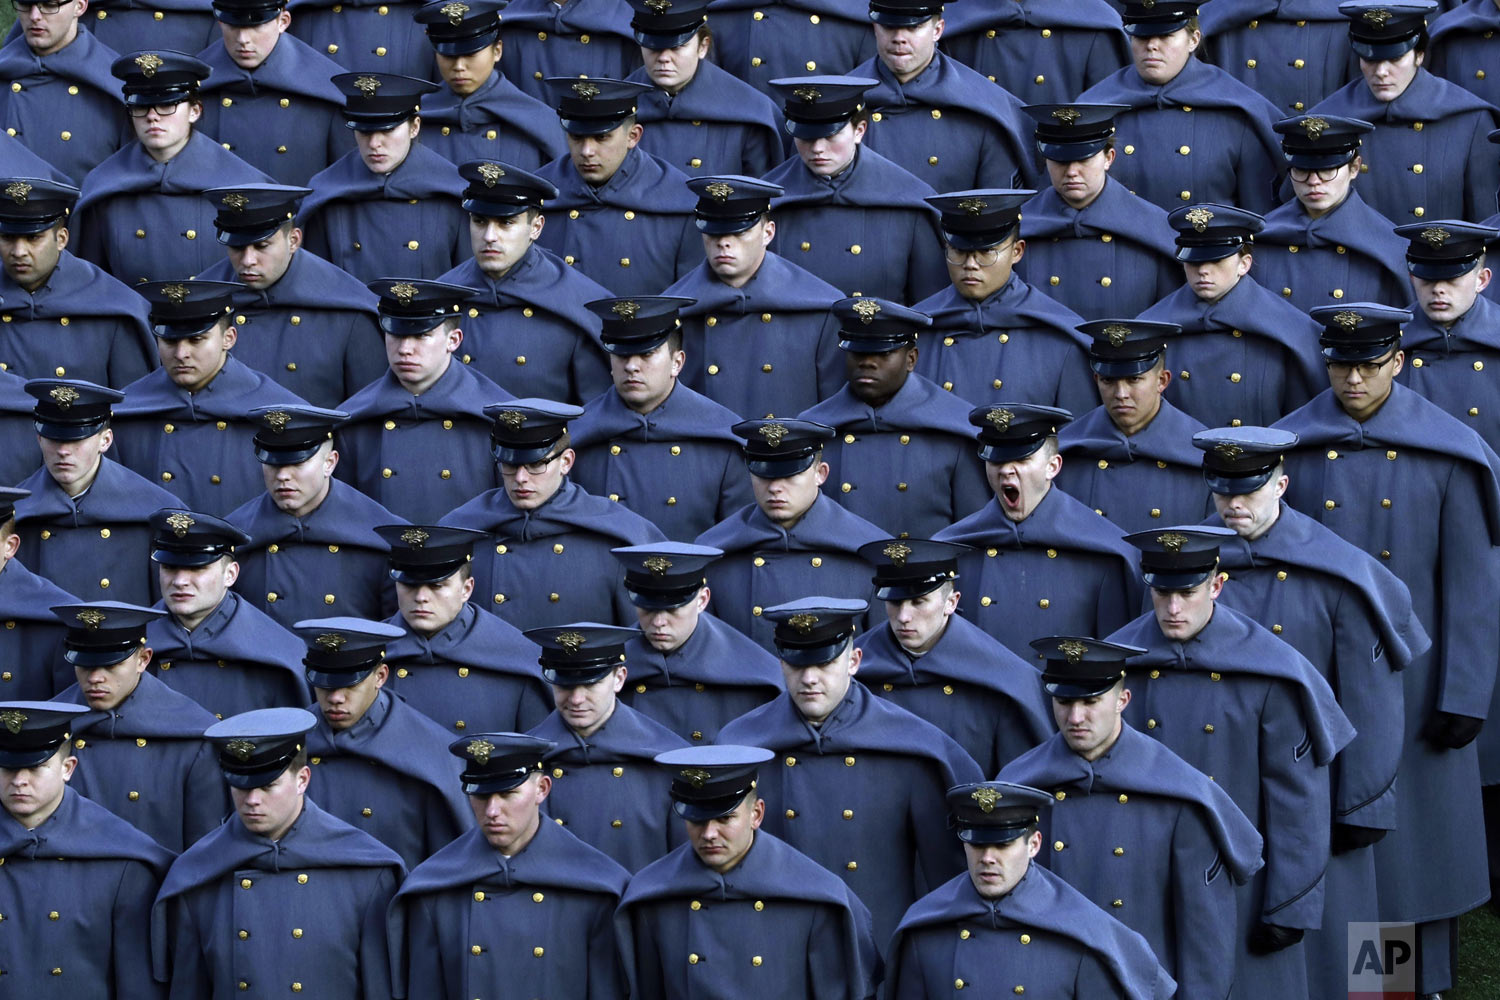 An Army cadet yawns after marching onto the field with others before an NCAA college football game against the Navy team in Philadelphia on Saturday, Dec. 8, 2018. (AP Photo/Matt Slocum)